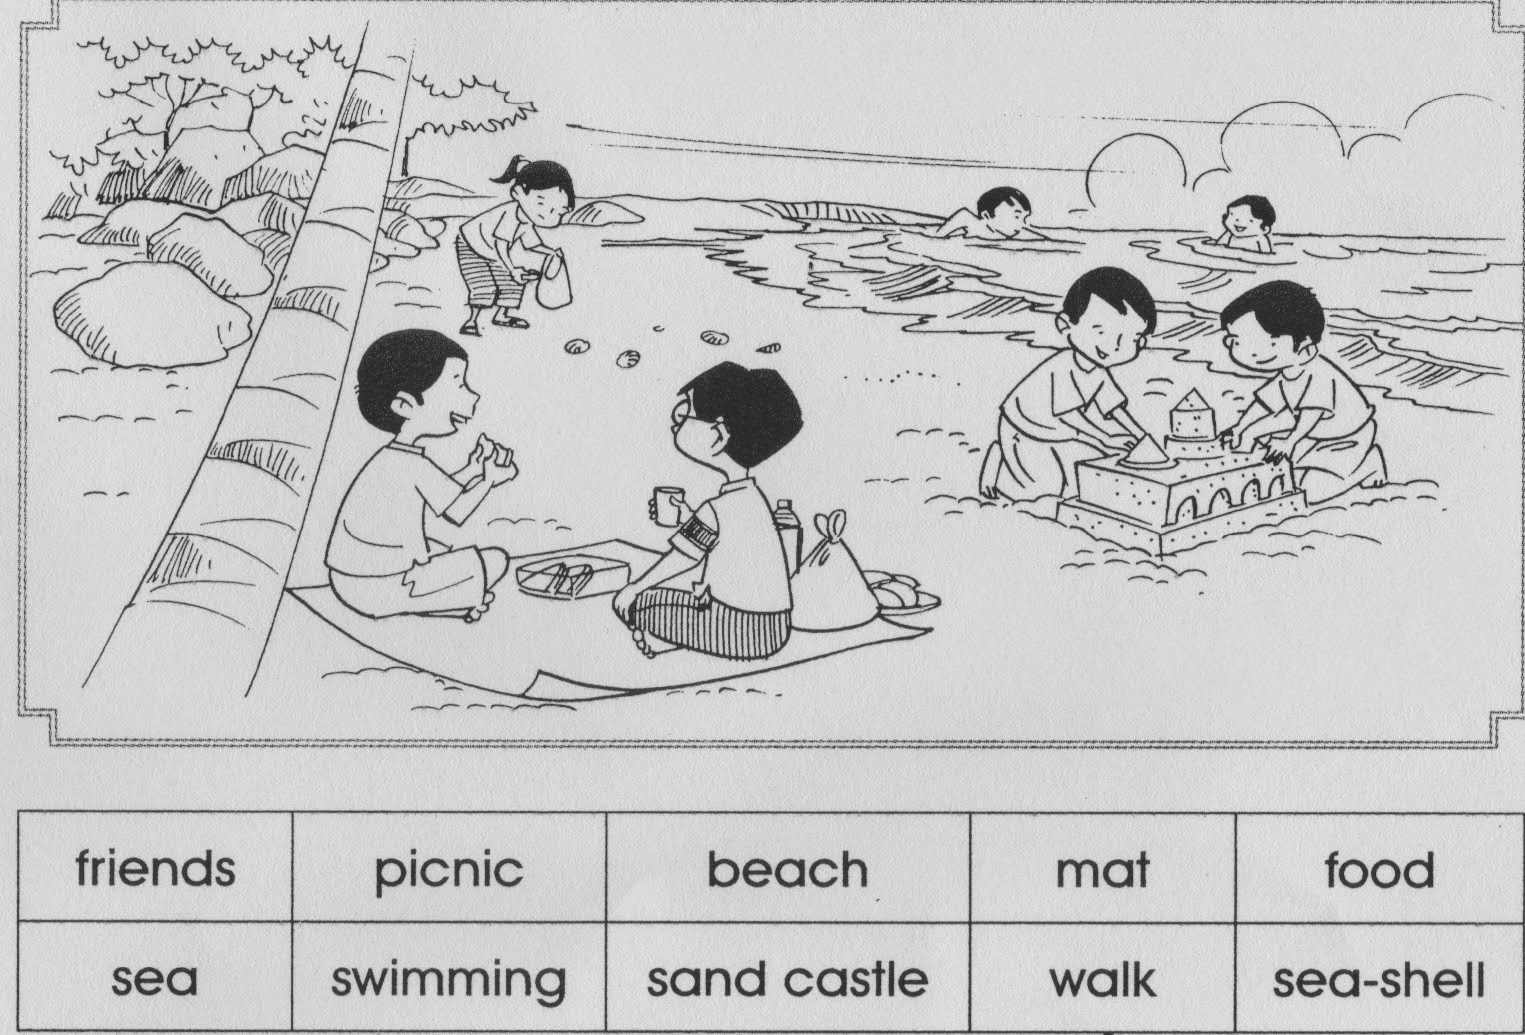 essay picnic with family at the beach